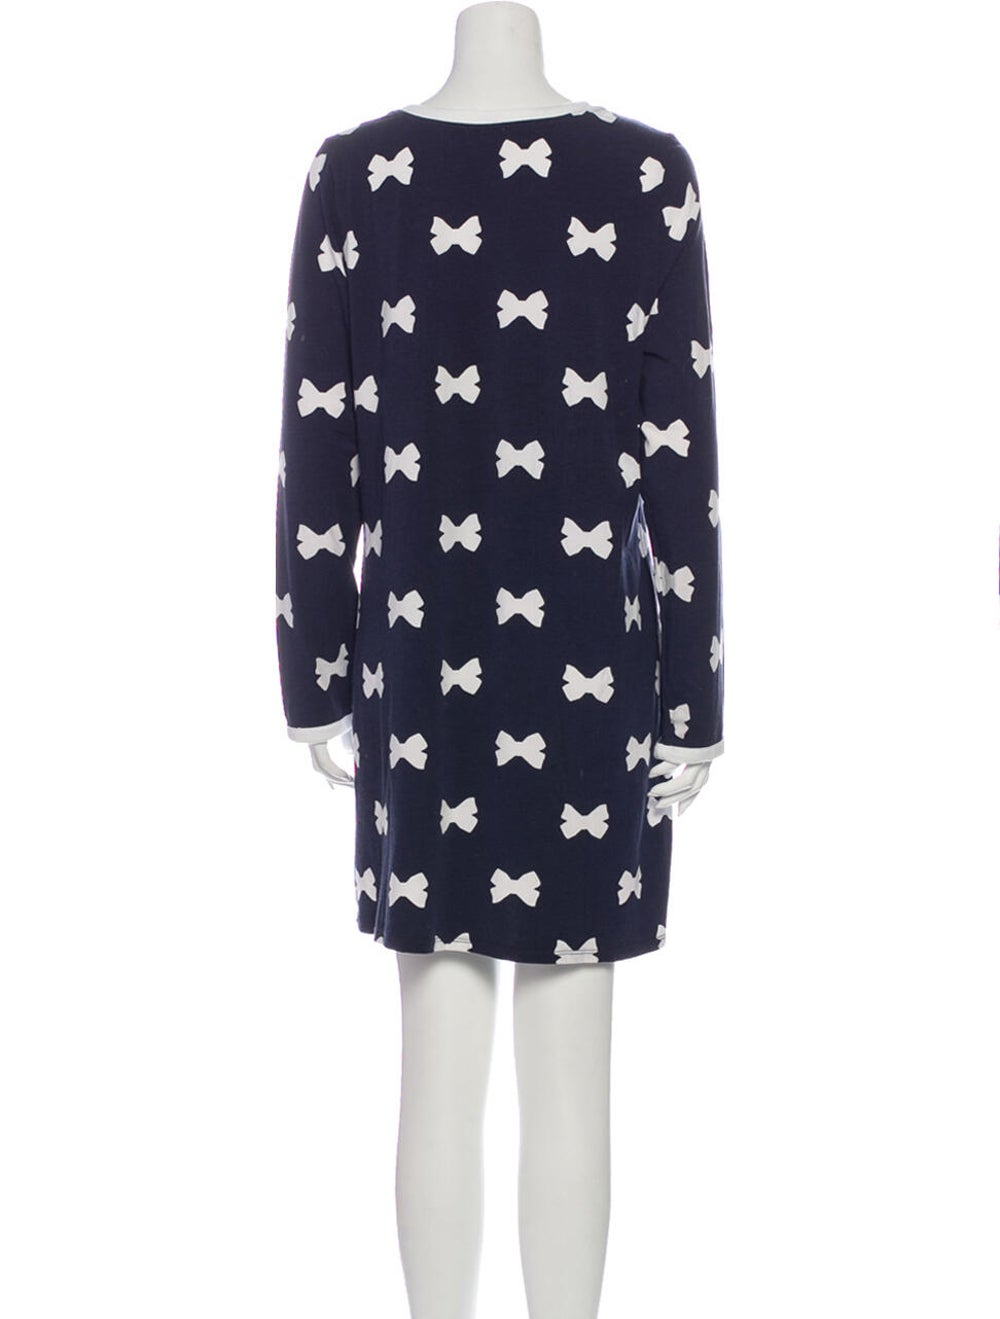 Kate Spade New York Printed Pajamas Blue - image 3